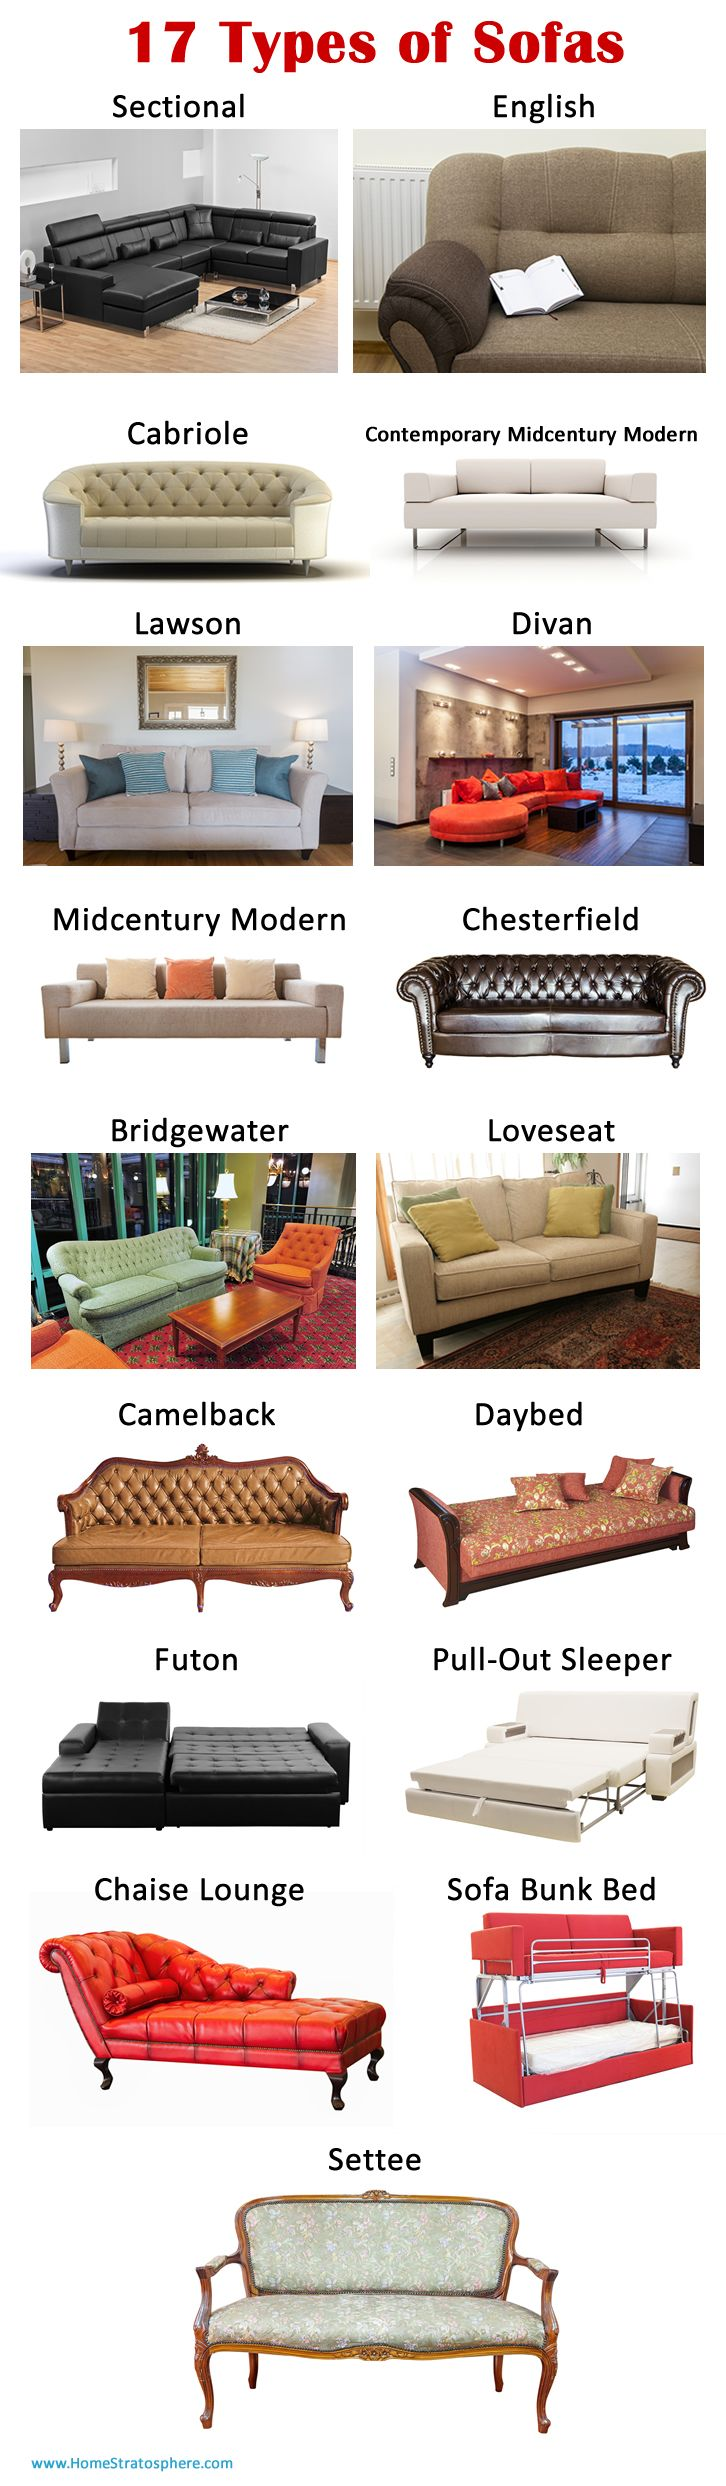 Names of sofas 20 types of sofas couches explained with for Decorating styles explained